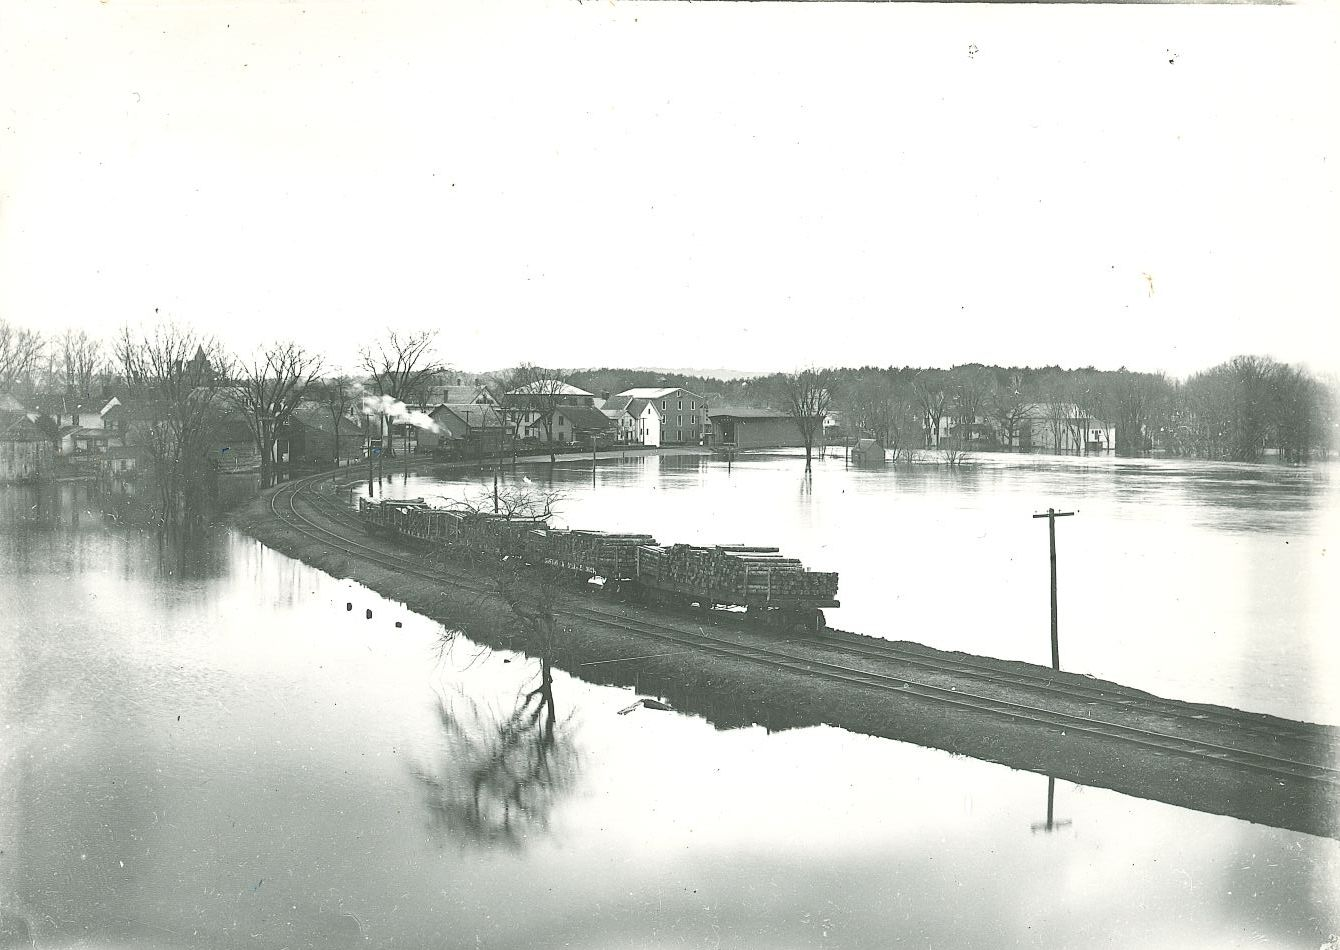 Undated image of a train full of lumber heading into the Contoocook Depot with high waters on both sides of the track.